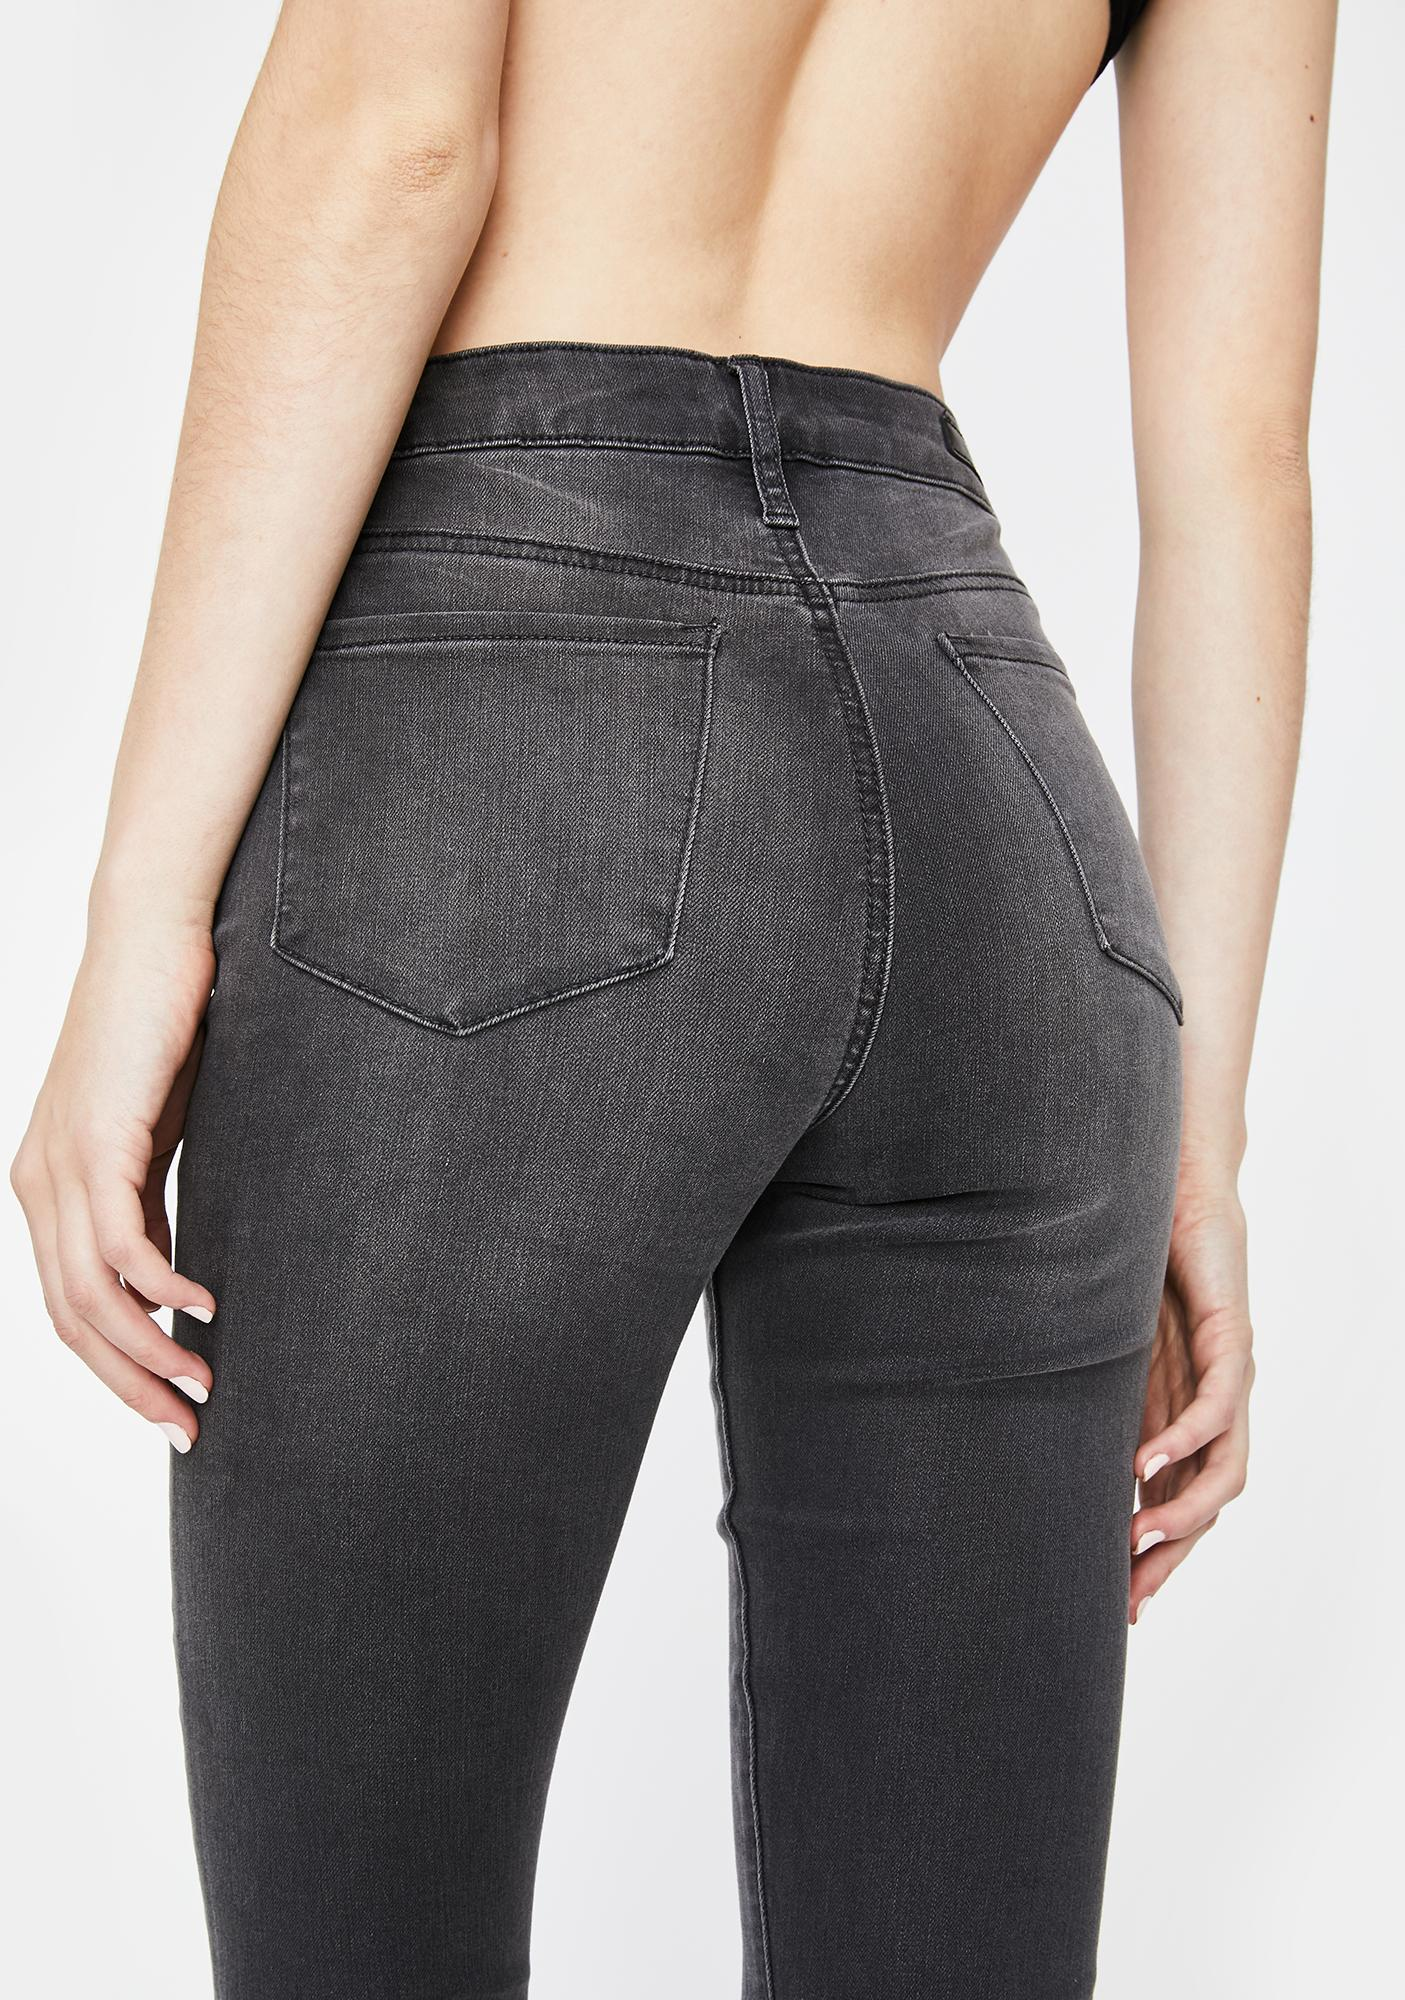 Articles of Society Iron London Crop Flare Jeans